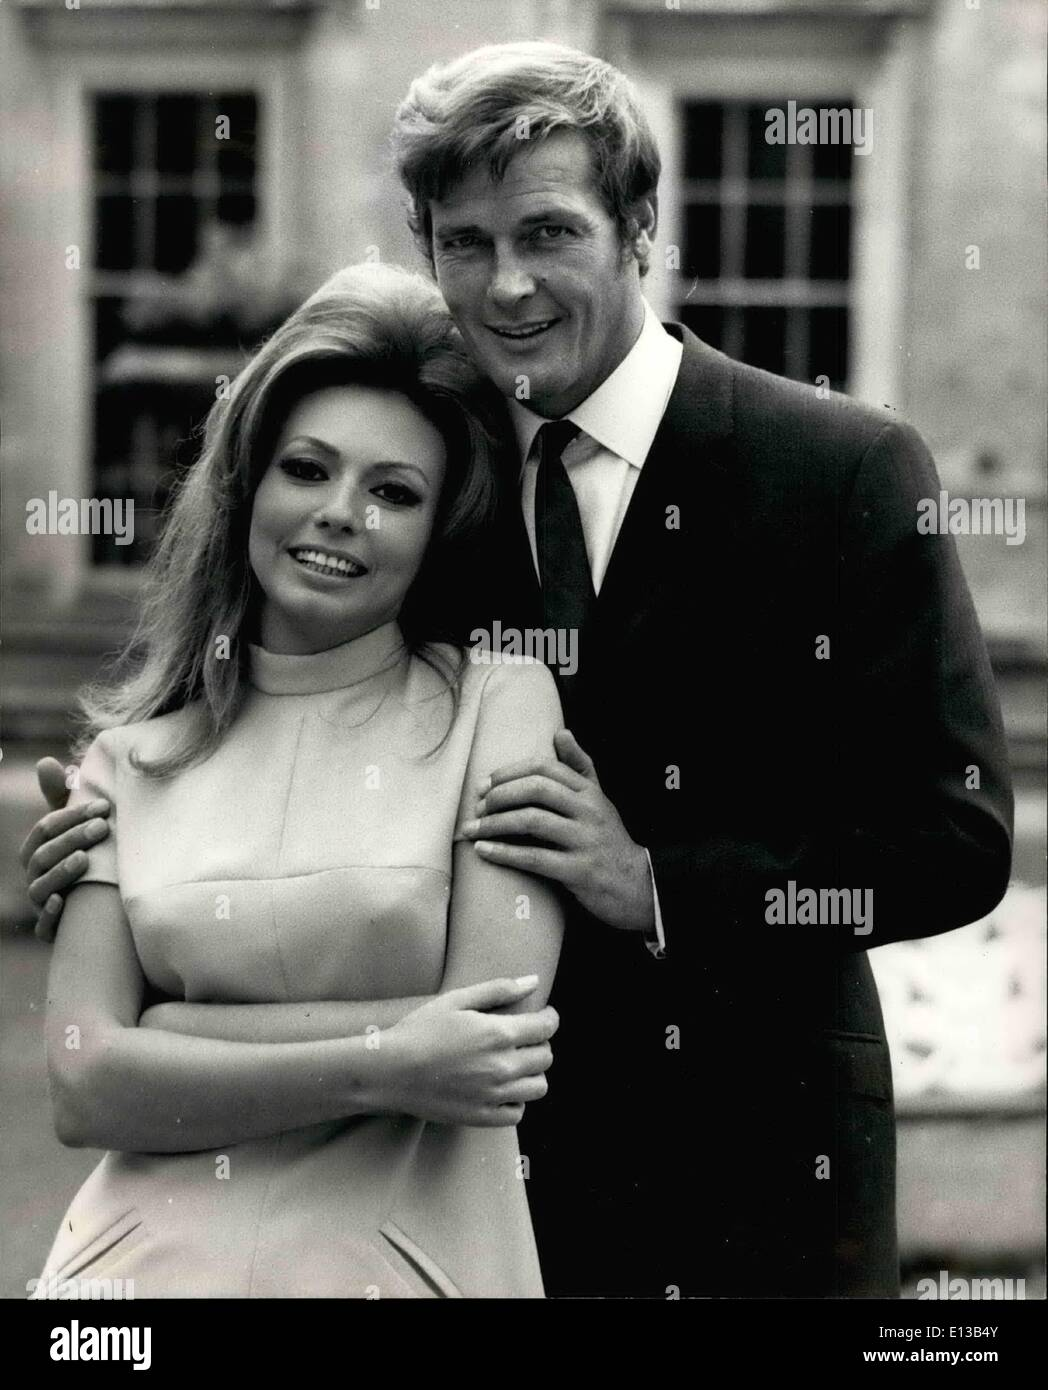 Feb. 29, 2012 - Stars at Woburn Abbey. Film stars Roger Moore and Claudie Lange, will be spending much of their time this week at Woburn Abbey, Bedfordshire by courtesy of the Duke and Duchess of Bedford, though not so much for pleasure as to work! For together with five of six hundred extras, Roger and Claudie are shooting their latest film, 'Crossplot', which also stars Martha Hyer and Alexis Kenner in the beautiful grounds of the abbey. Roger Moore and Claudie Lange pose for a picture during a break from filming 'Crossplot' in the grounds of Woburn Abbey. - Stock Image